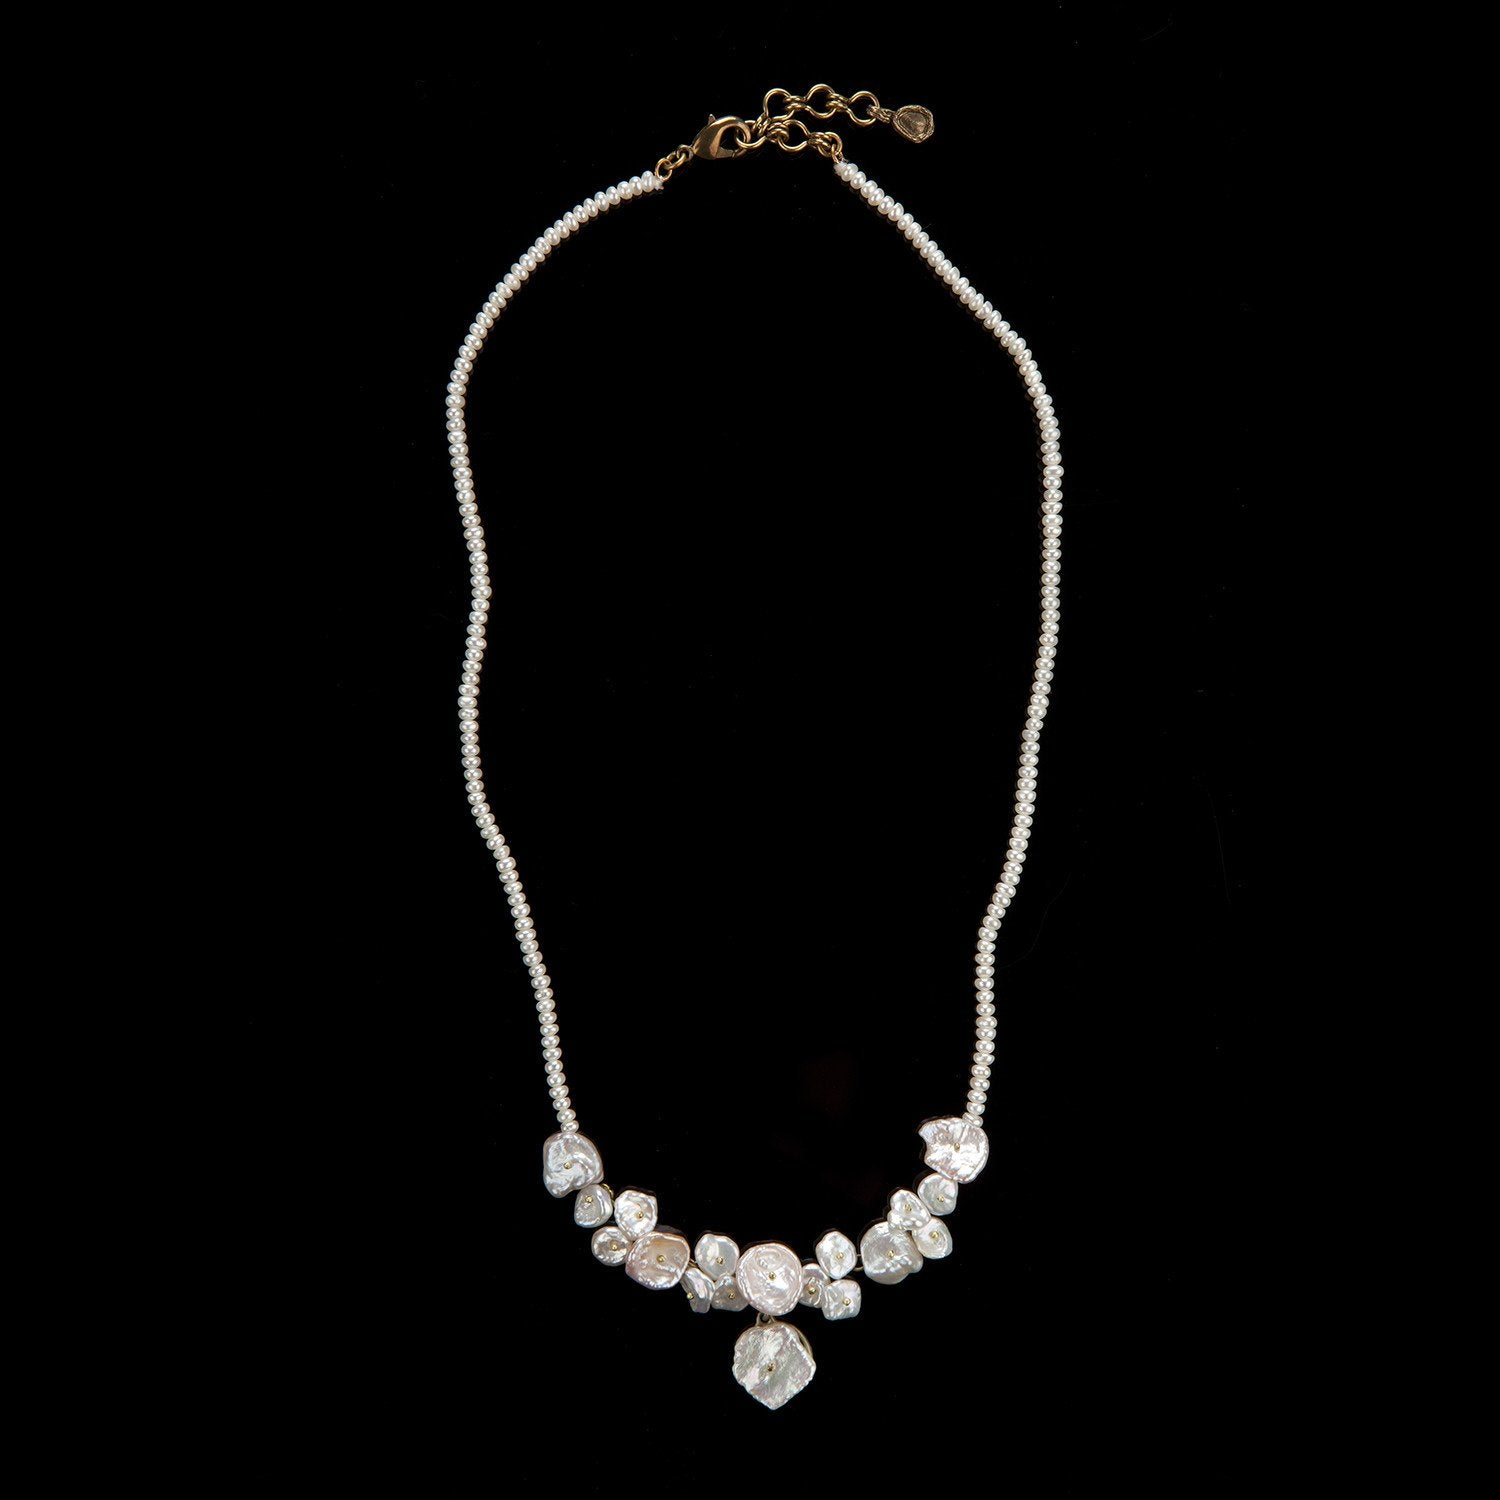 Silver Dollar Necklace - Petite Contour